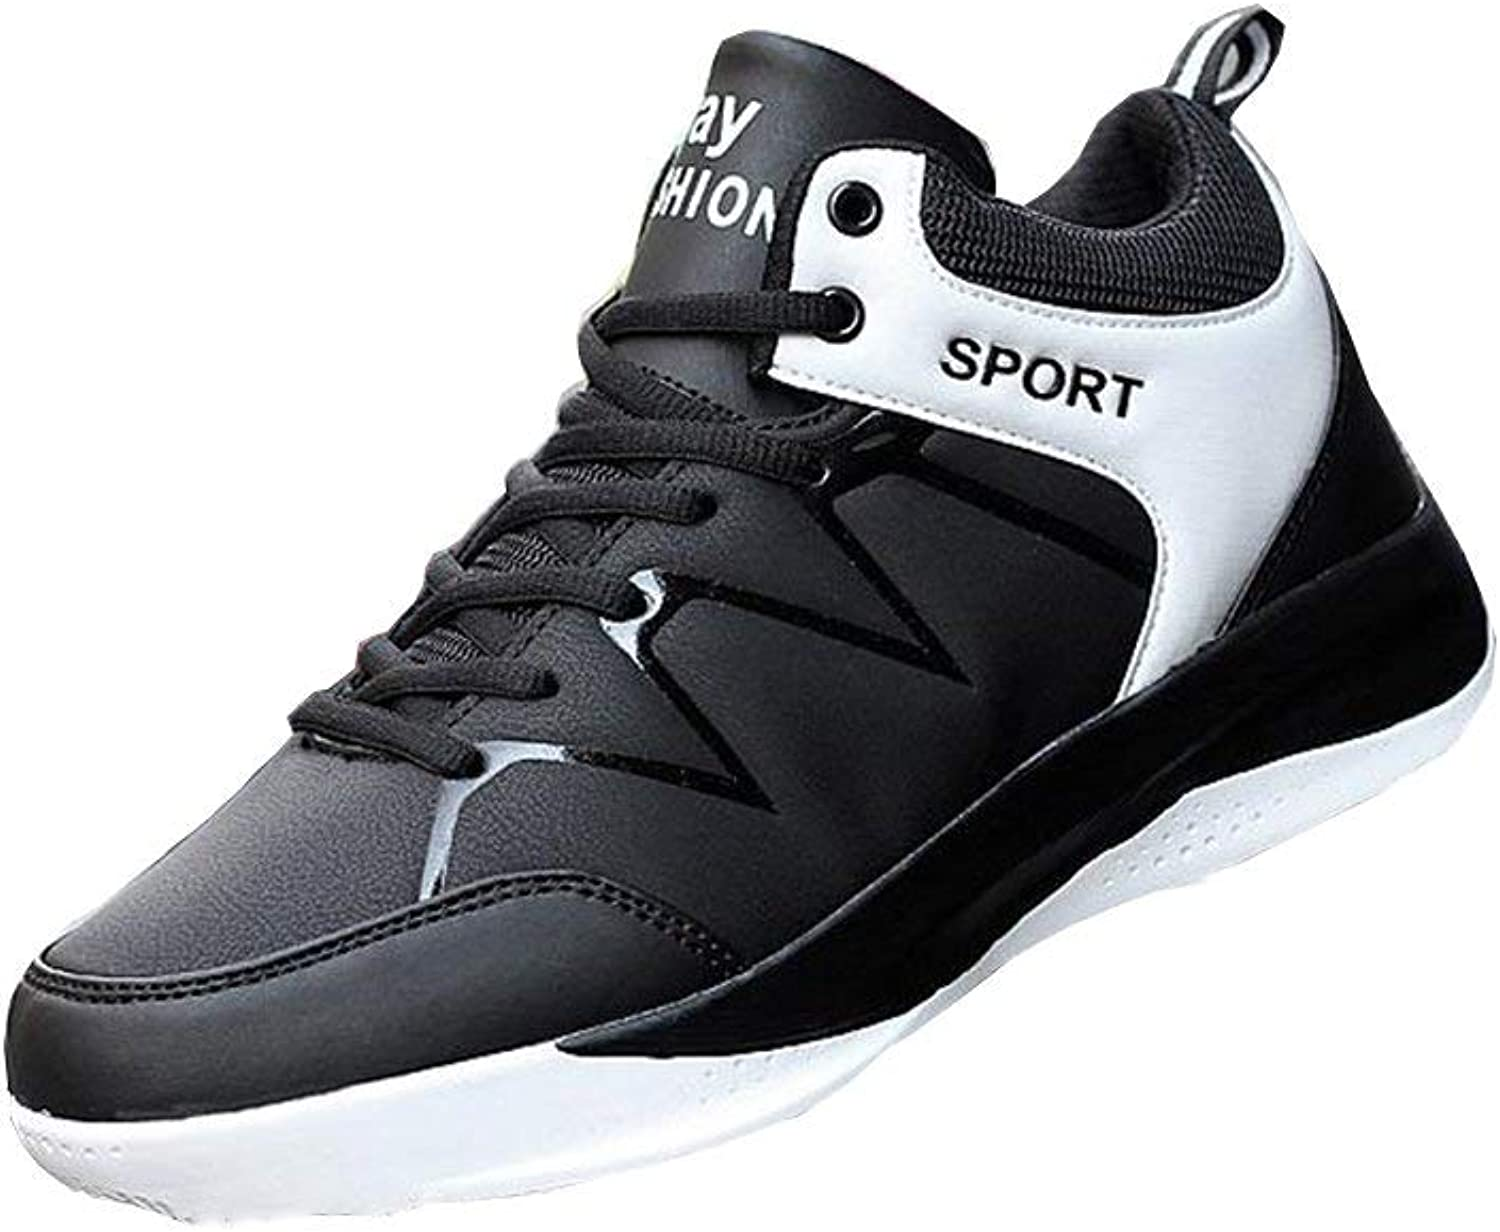 Dsx Autumn and Winter Men's shoes Korean High shoes Sports and Leisure, white, EU39 UK6 CN39